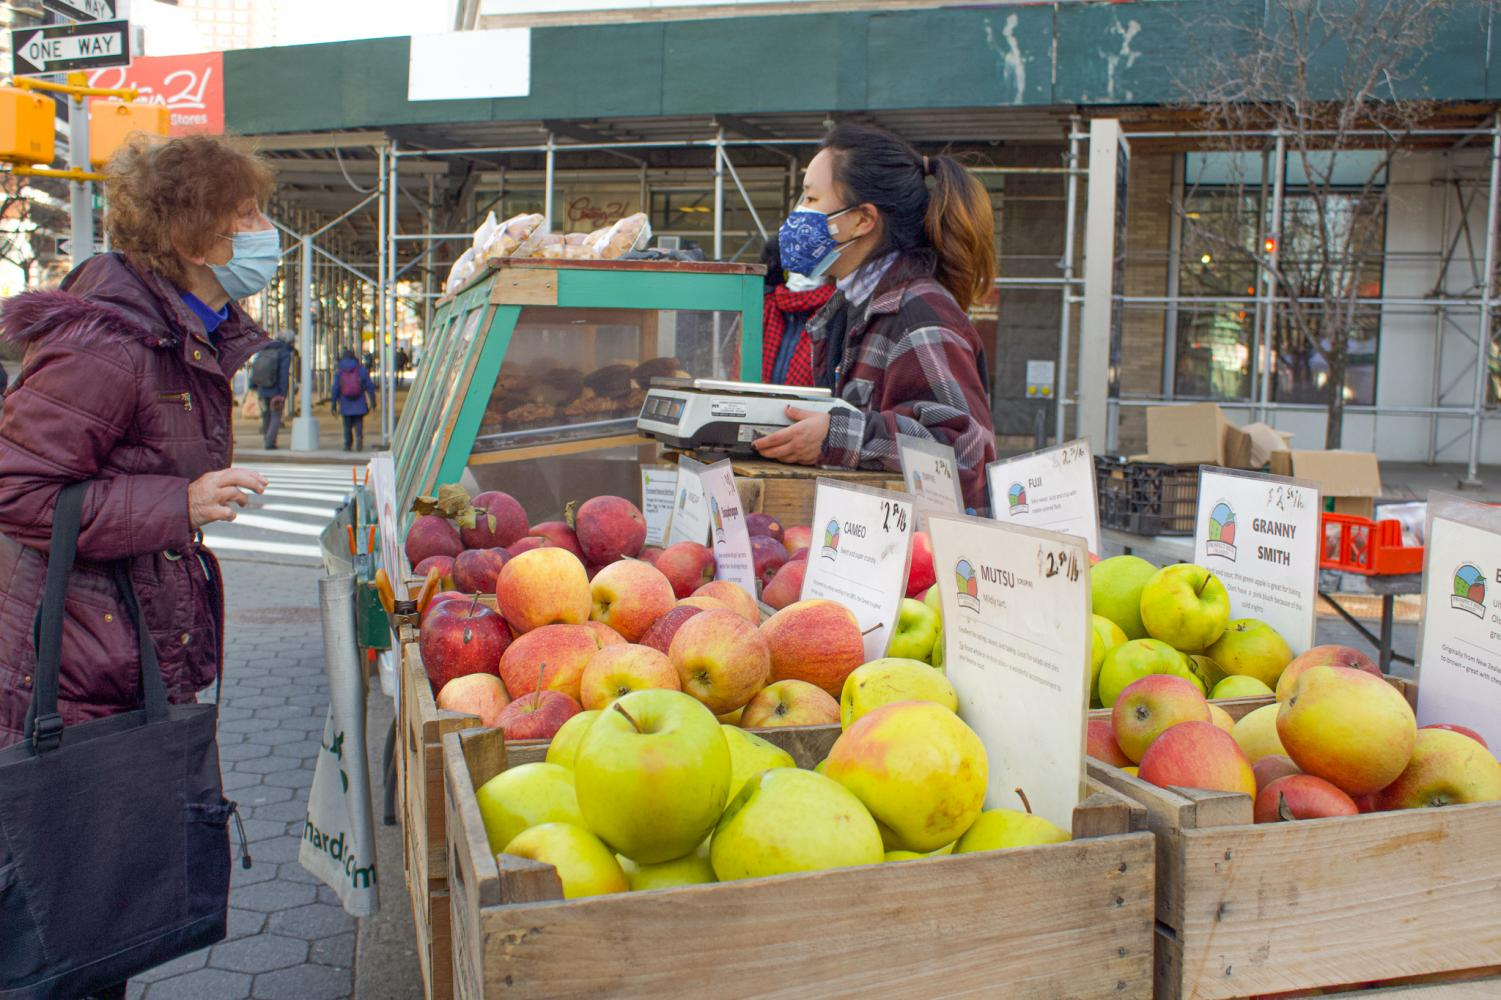 woman looking at apples in boxes at an outdoor spring farmer's market